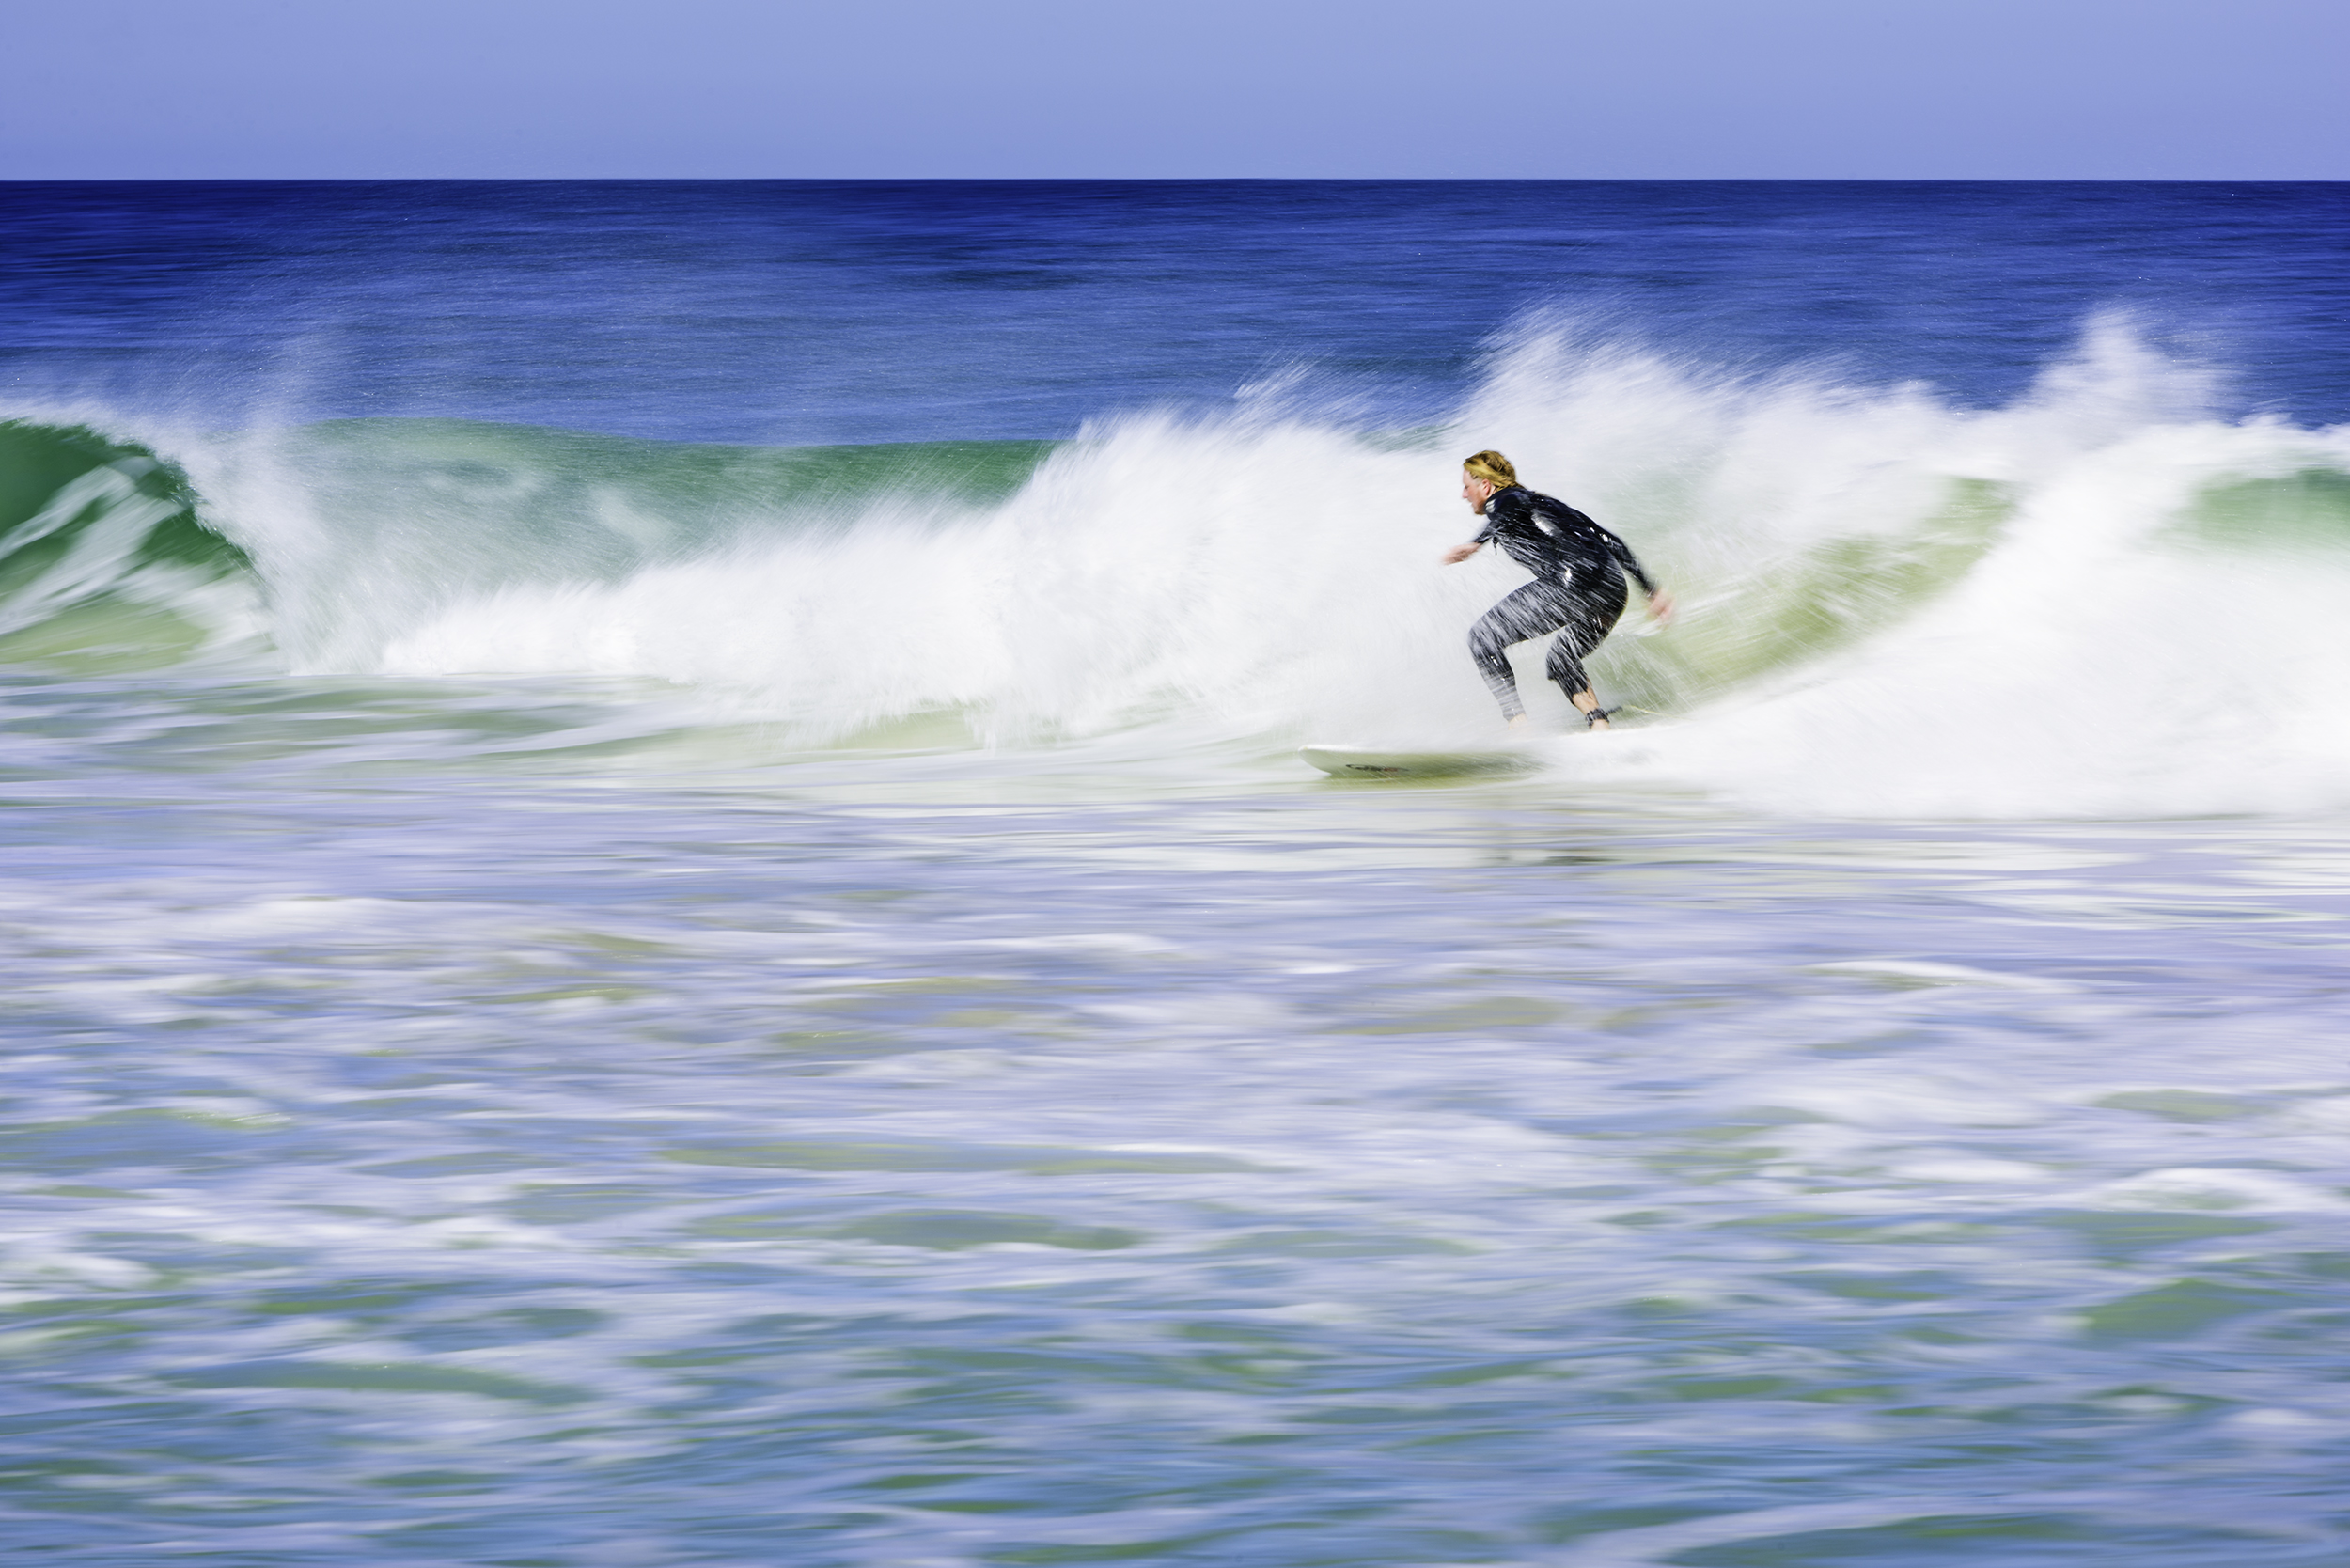 Spyrides_Kyle_Scarbourough_Surf_#1Sessions_23.2.2017_DSC8052.jpg